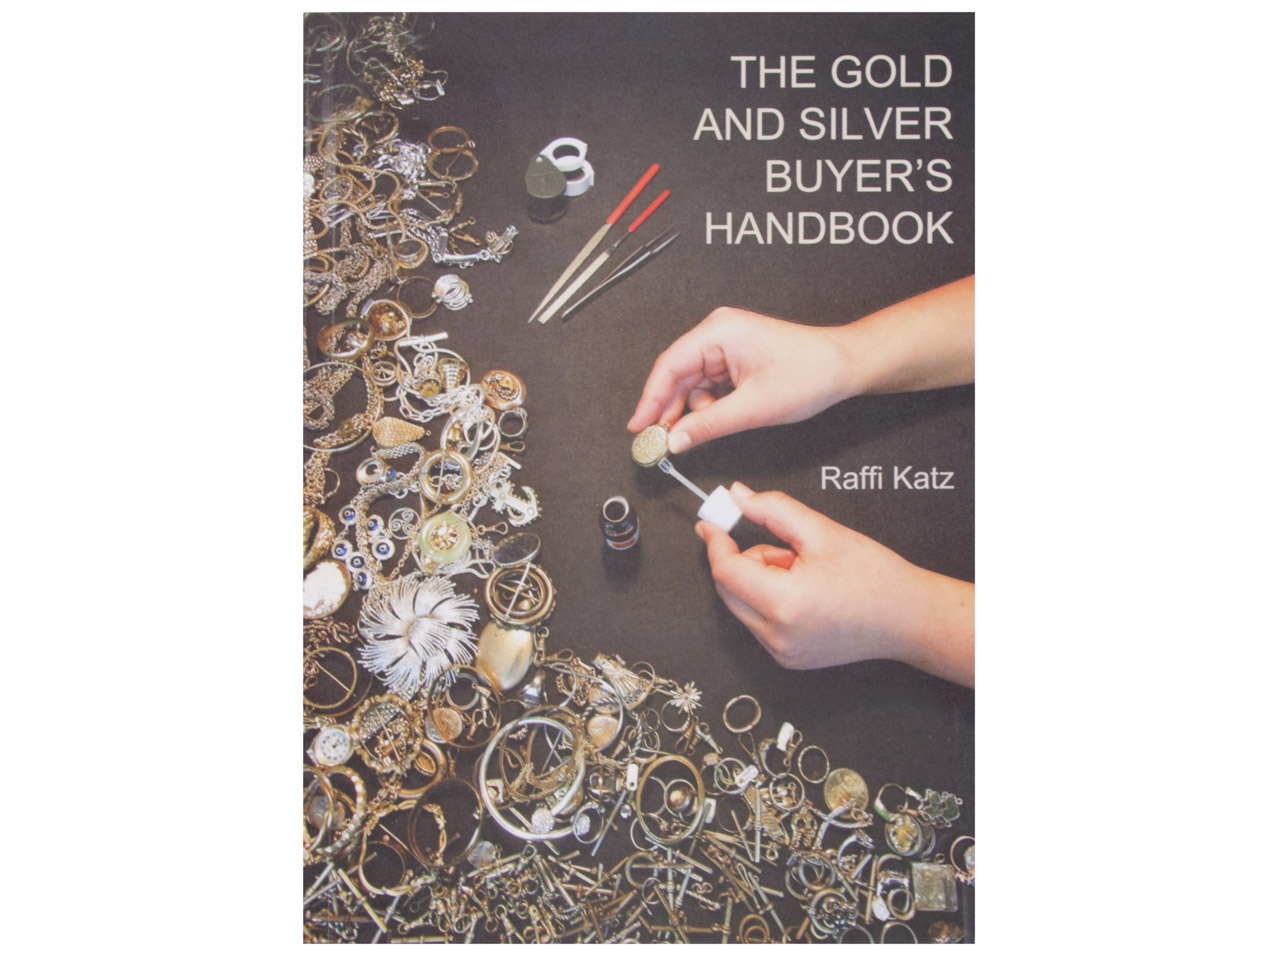 The Gold And Silver Buyers Handbook By Raffi Katz